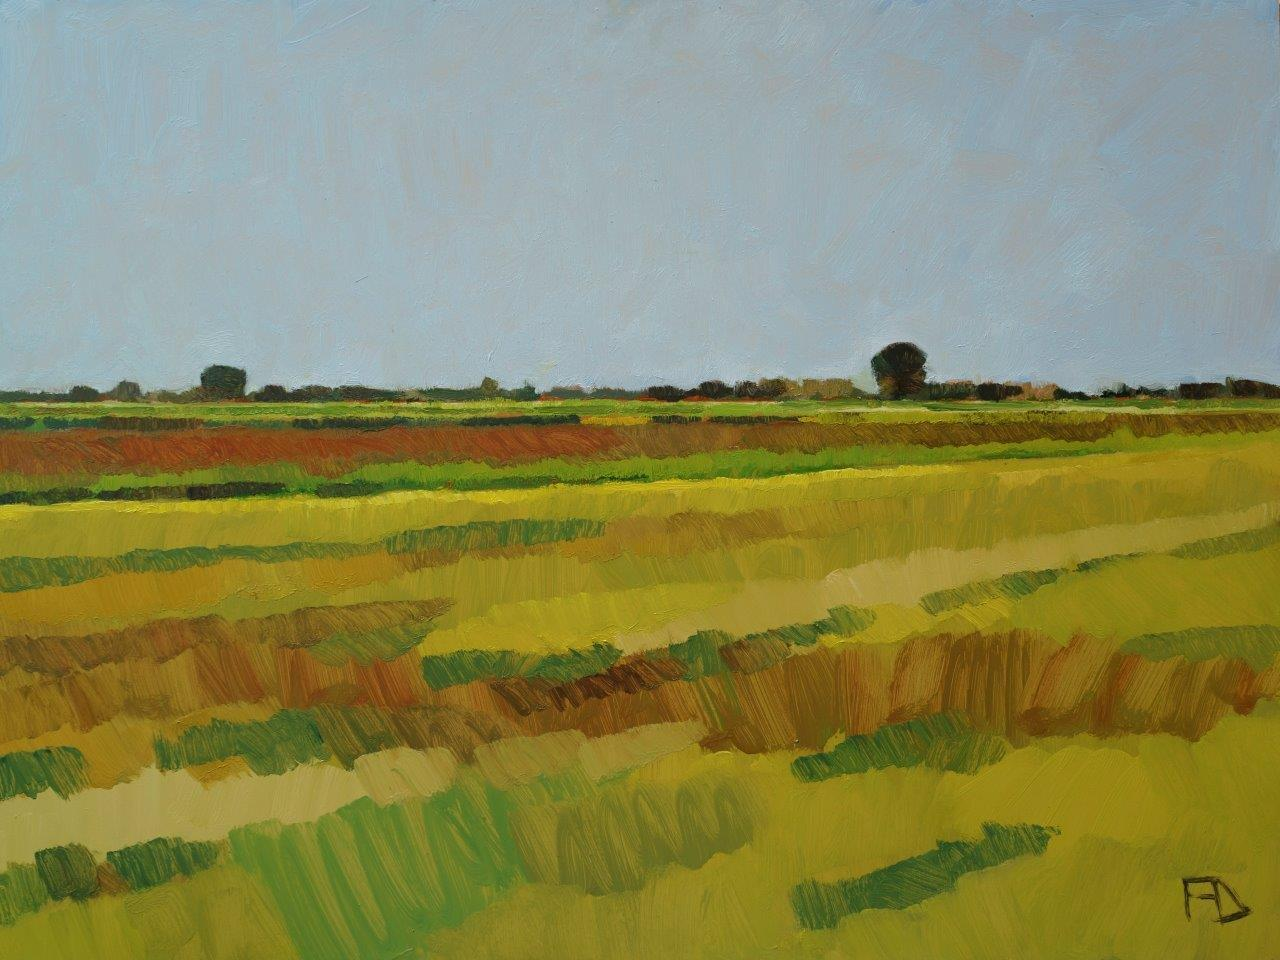 First Bloom in Spring- 21st Century Contemporary Painting of a Landscape